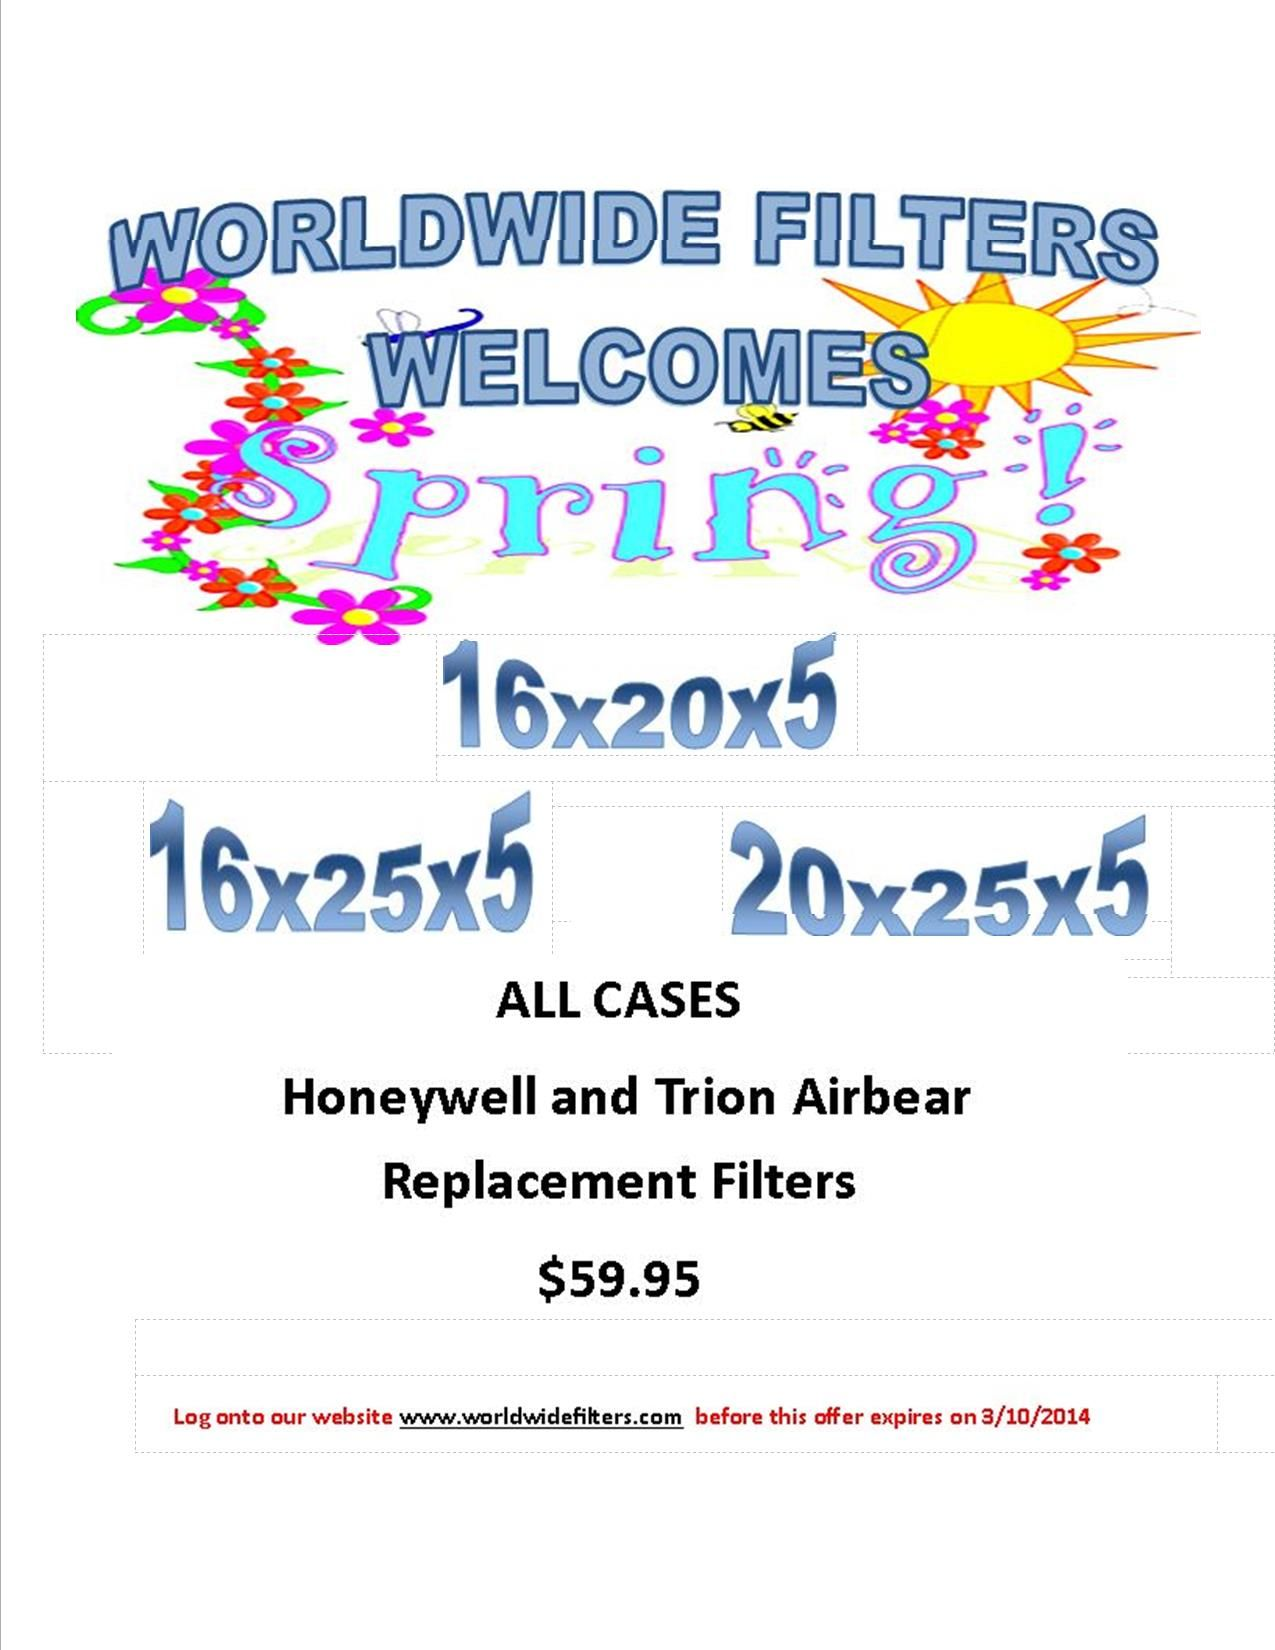 All Honeywell & Trion Air Bear replacement filters are now